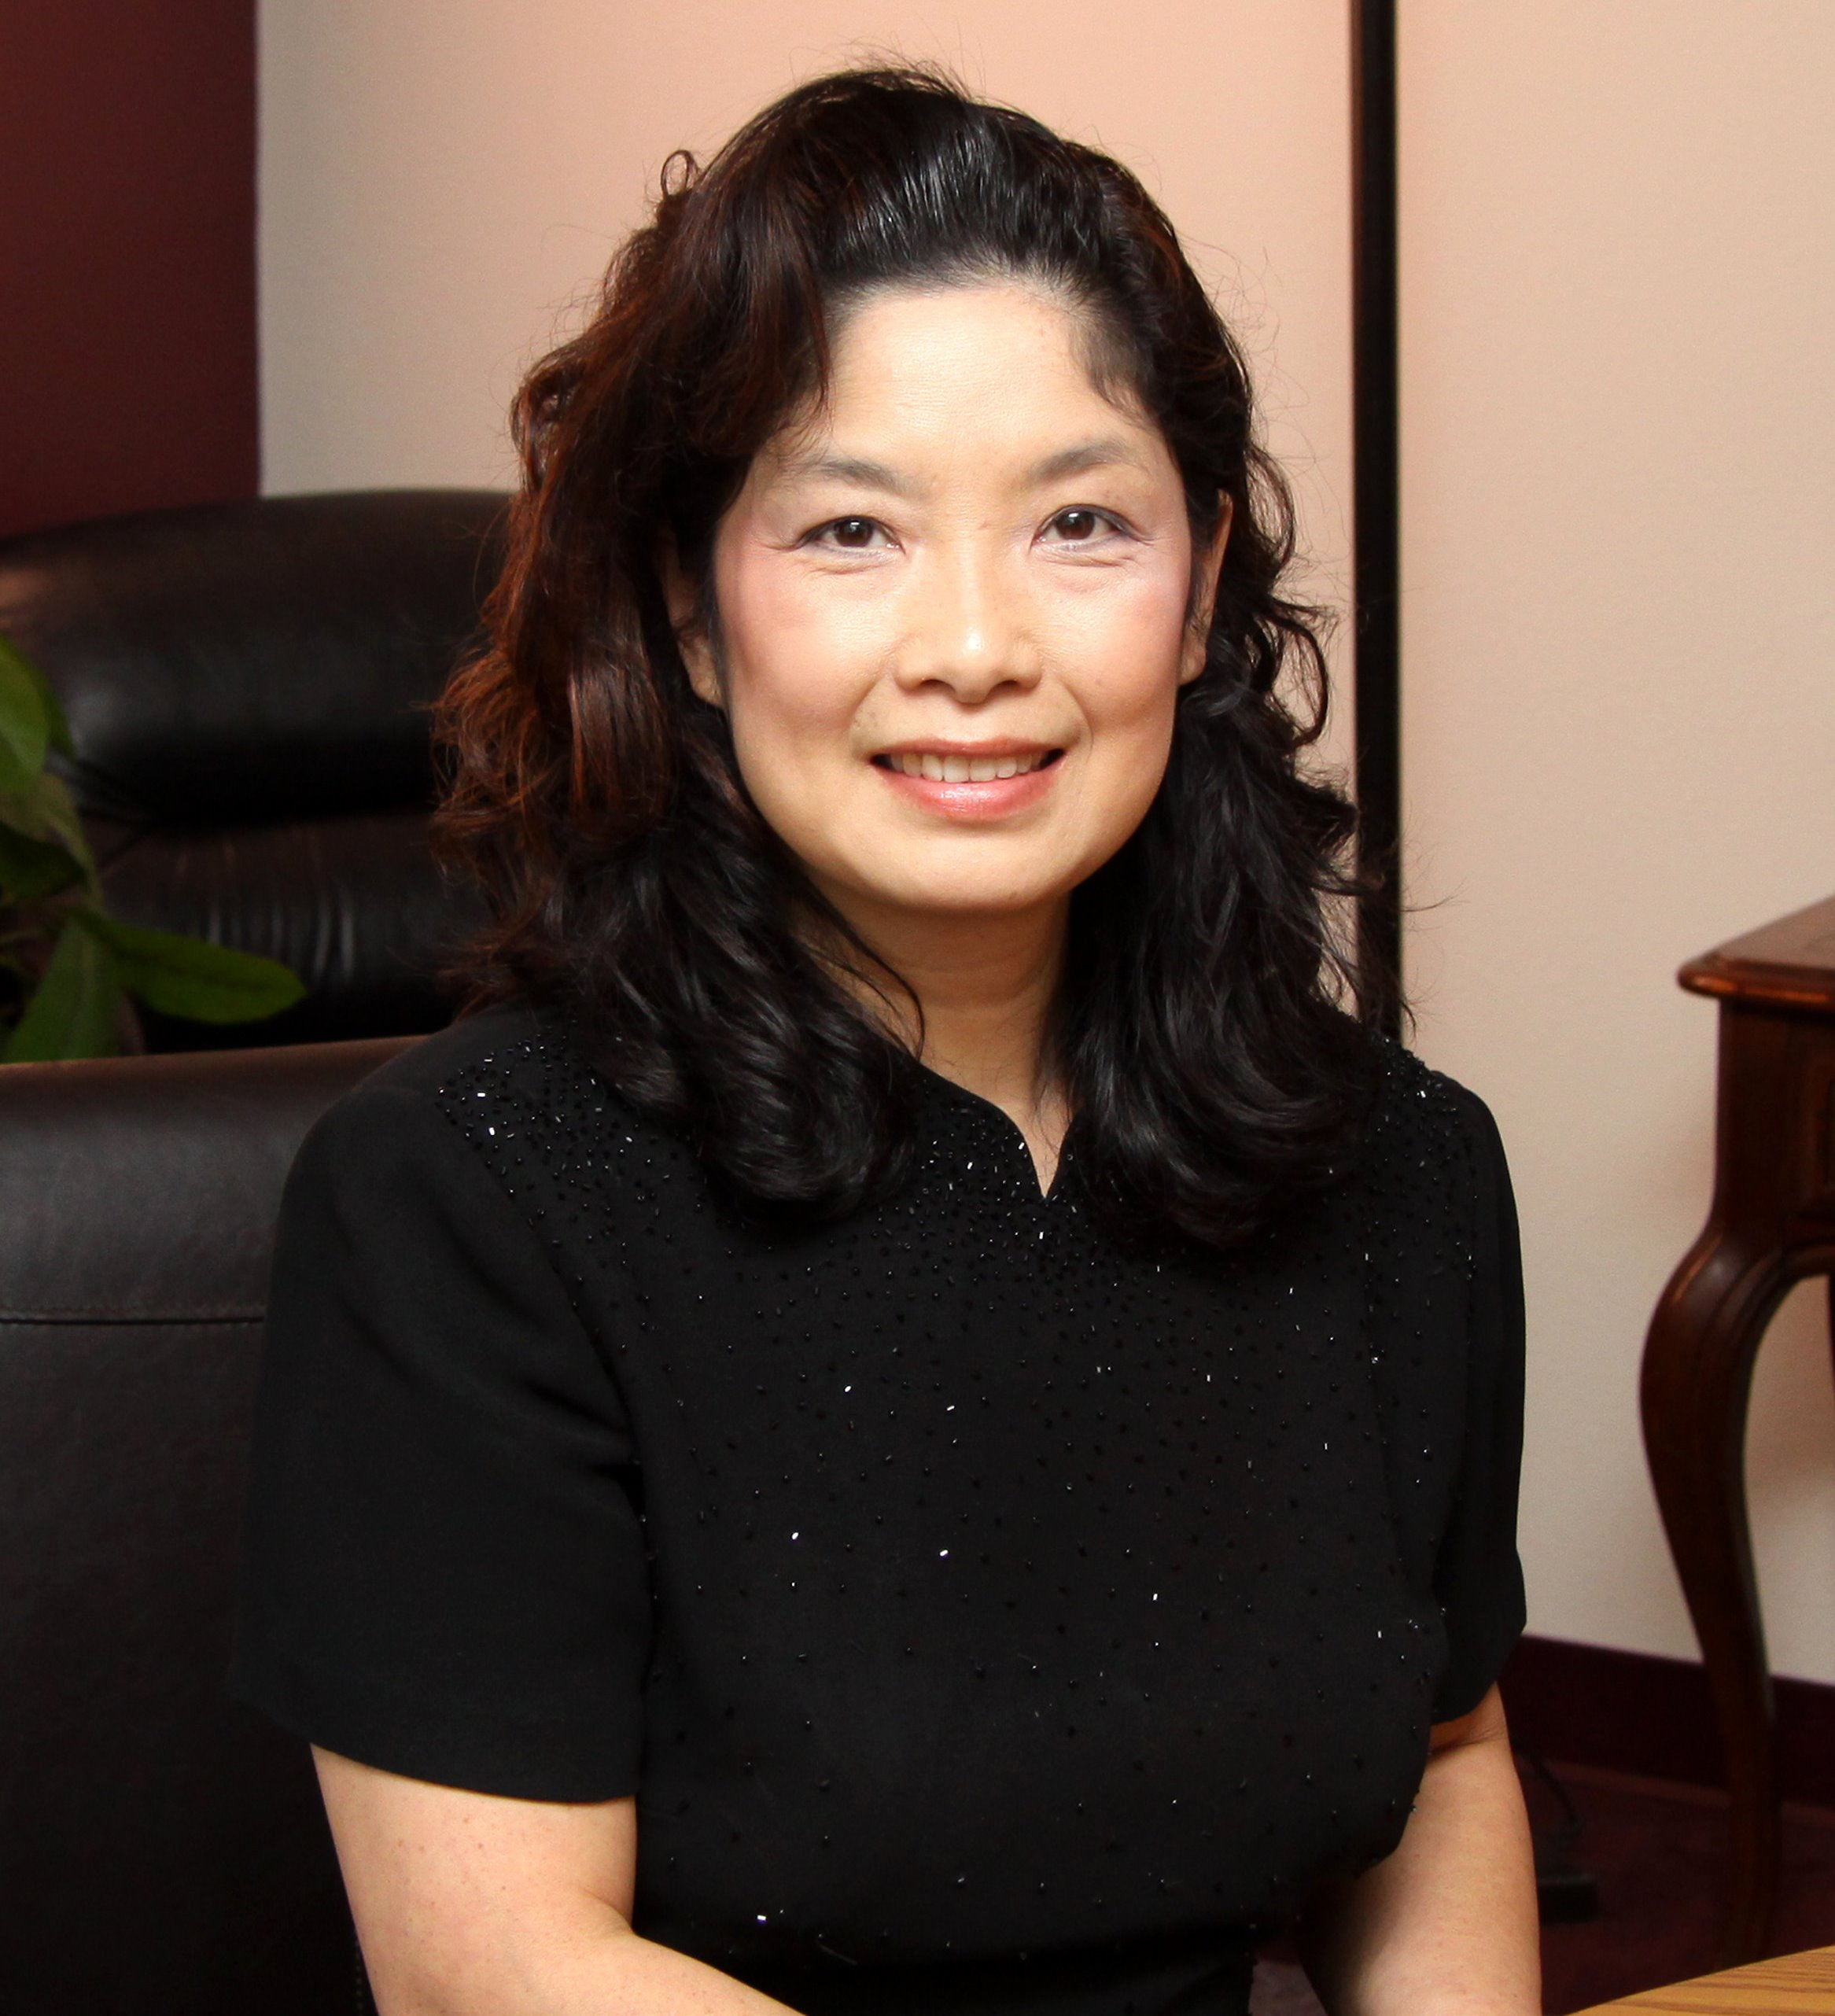 Esther Wang's Profile Image